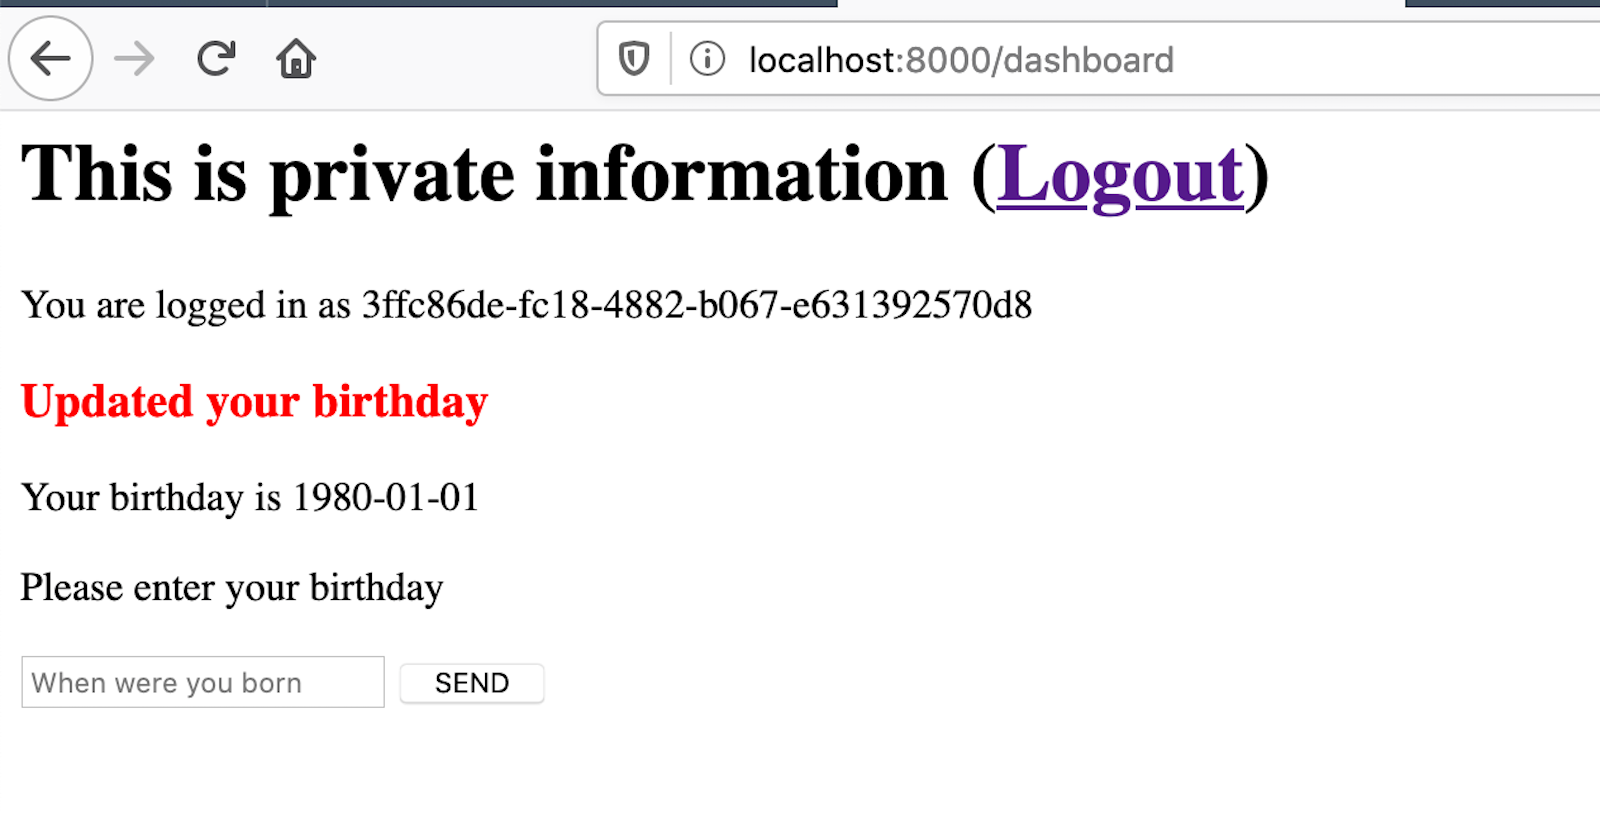 The private dashboard with the user's birthday.